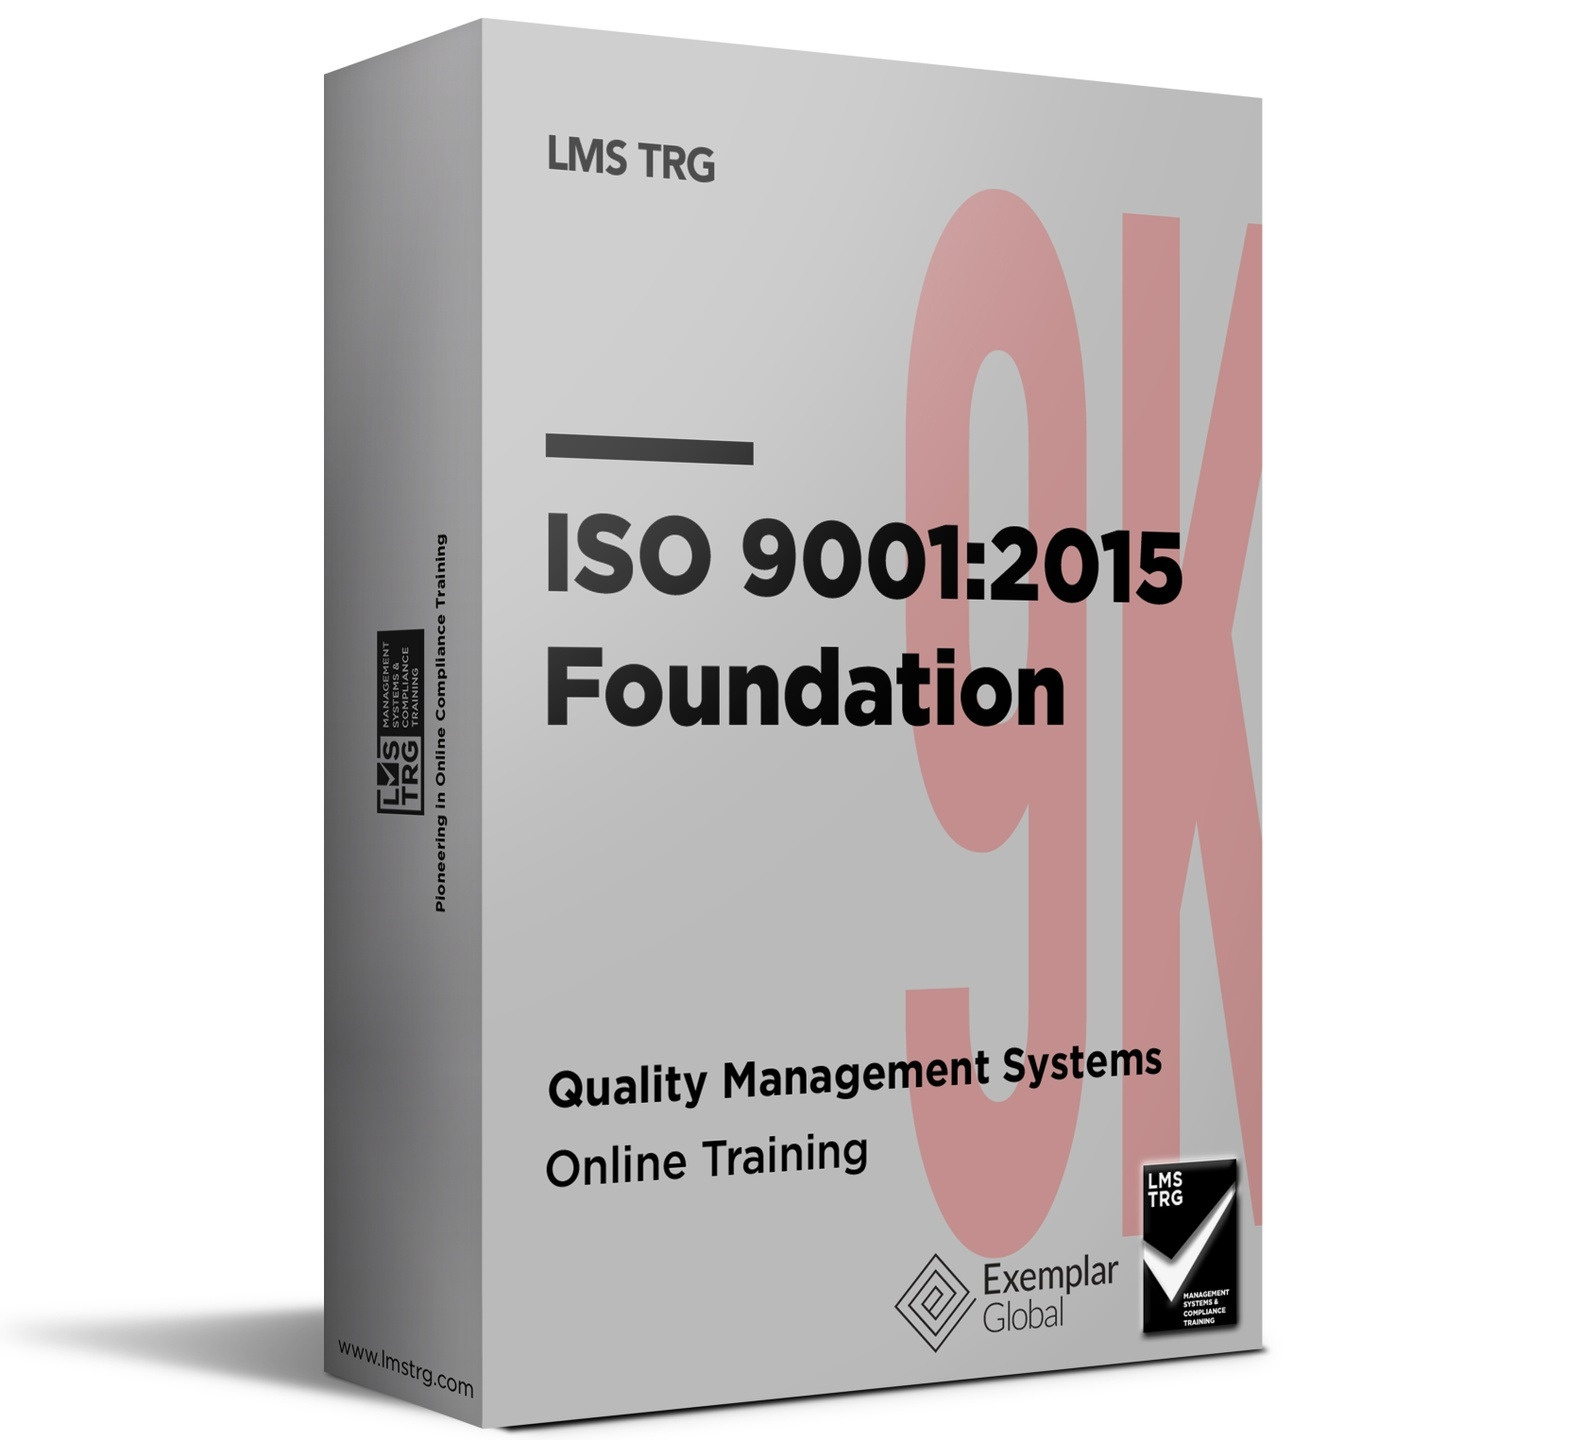 ISO Integrated Management Systems (IMS) Foundation Online Training